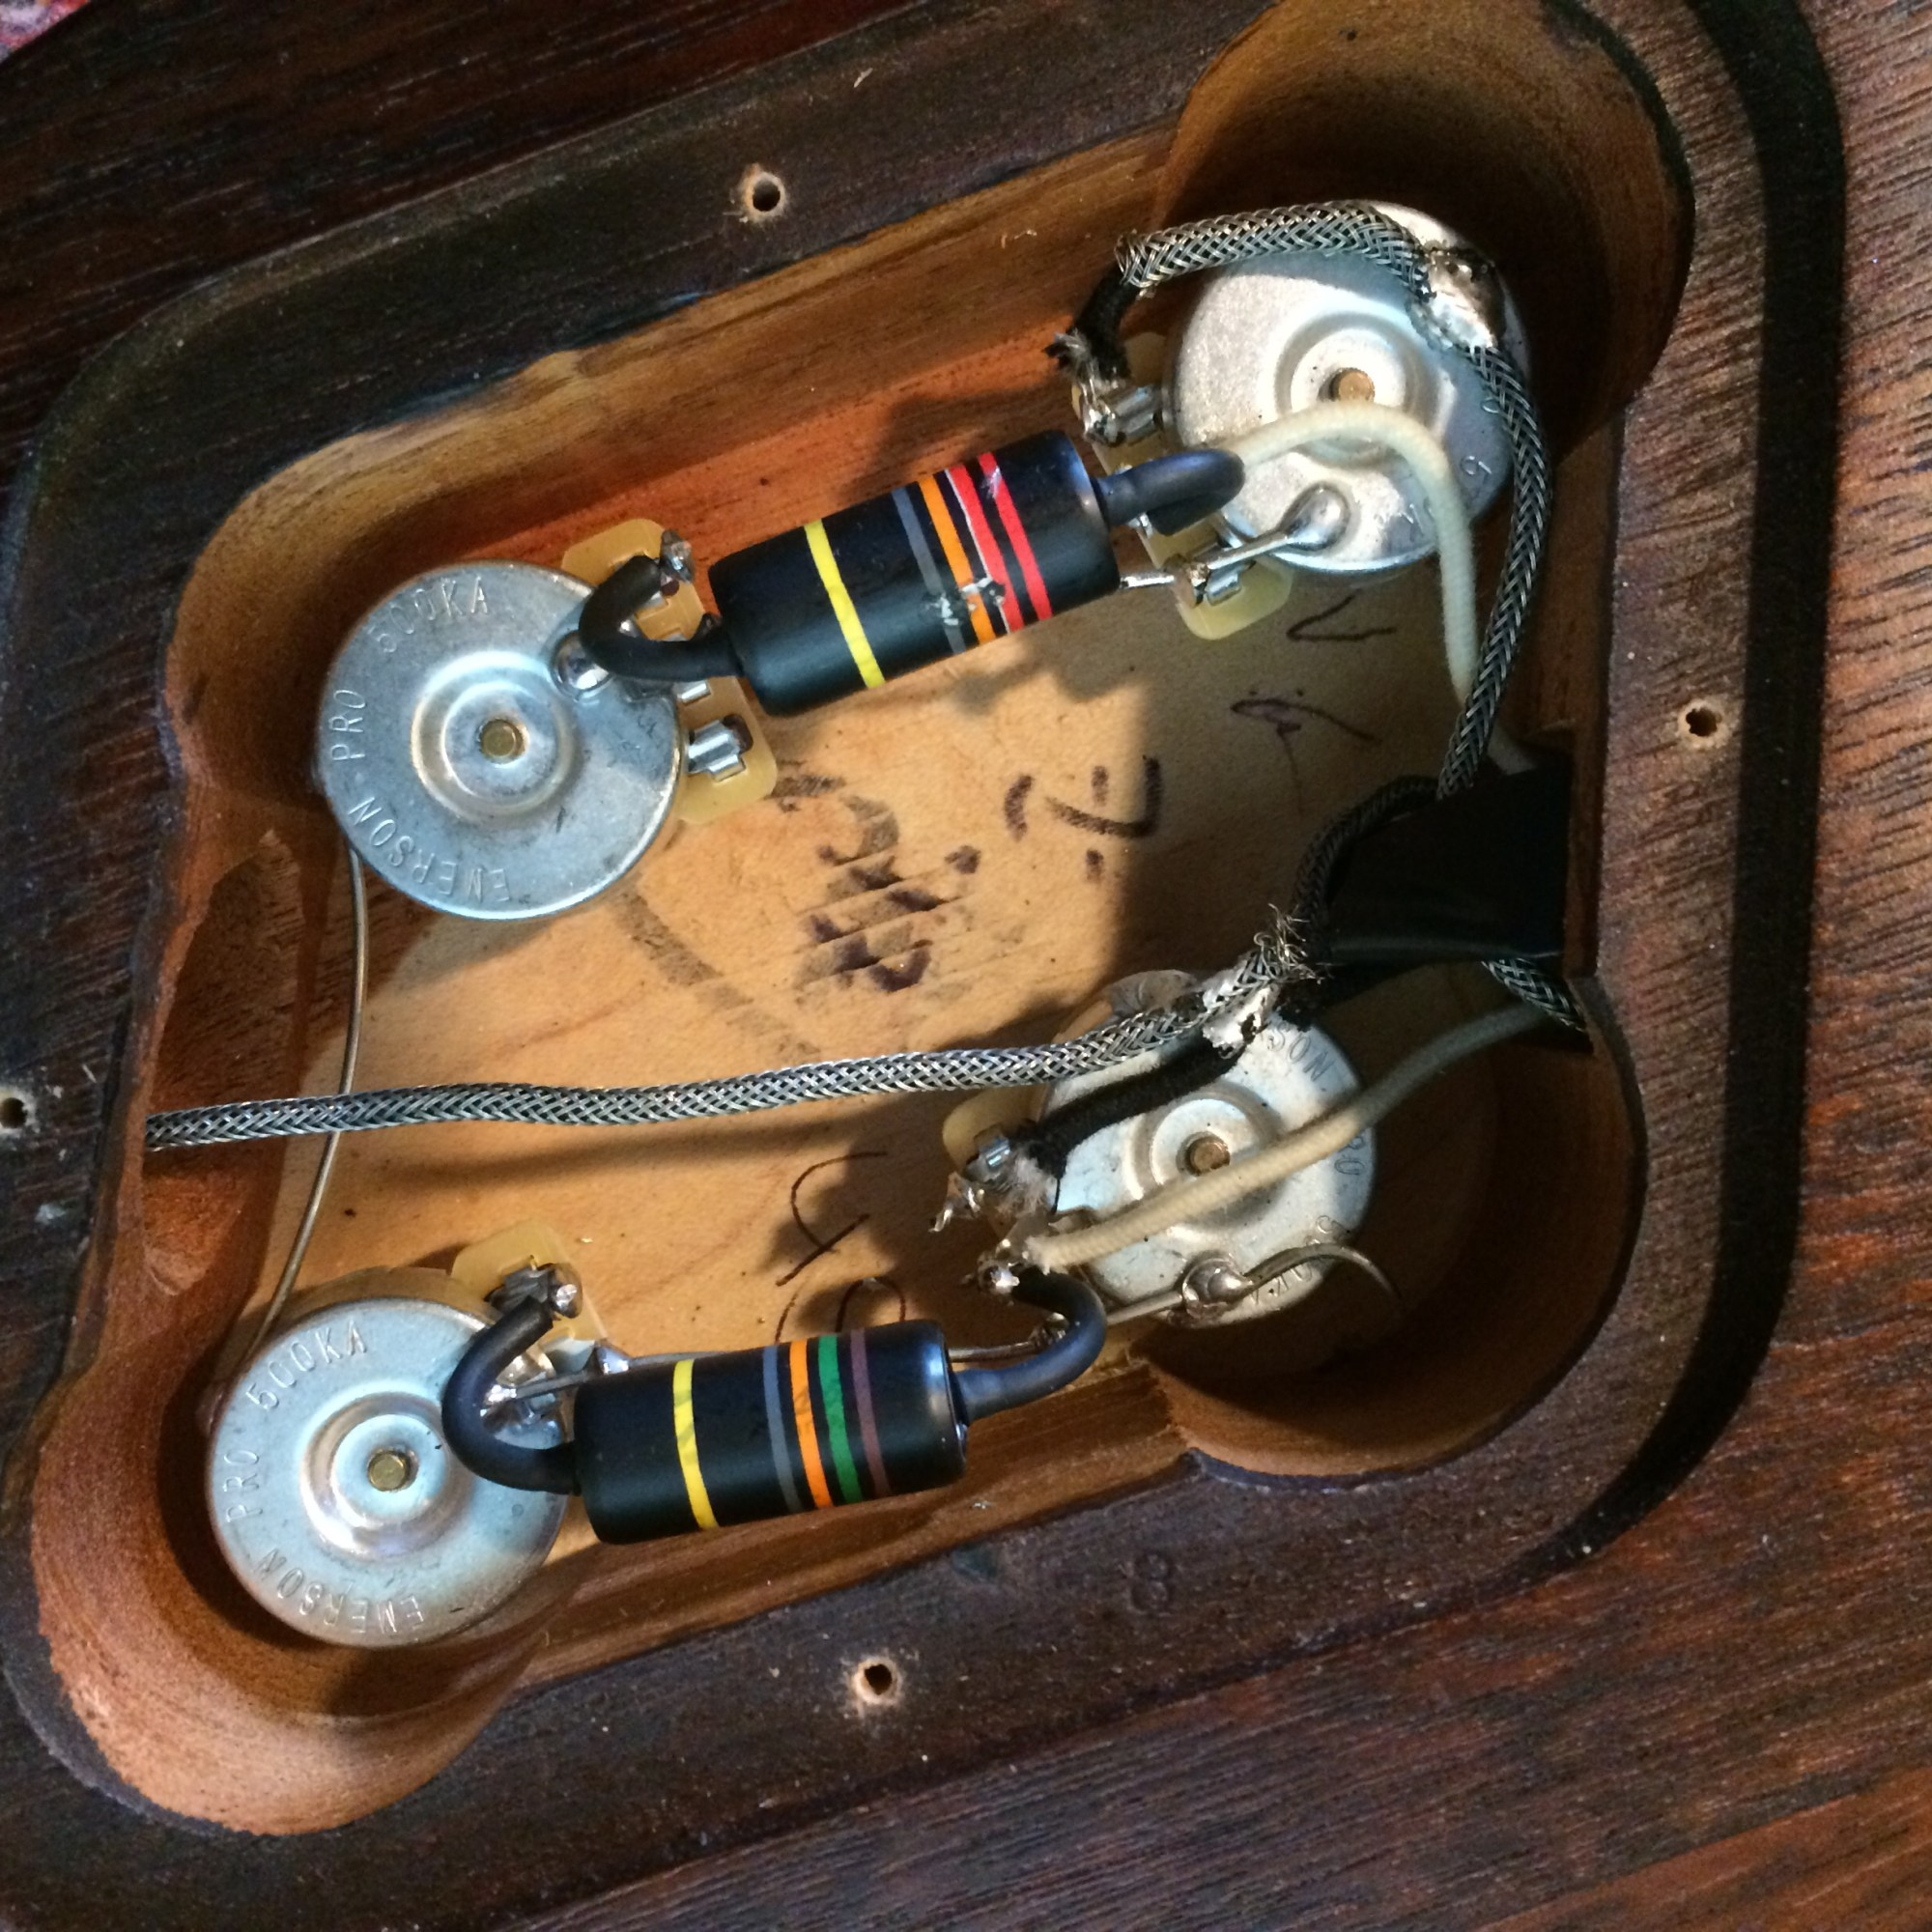 hight resolution of next i got a 50 s style les paul wiring harness from emerson custom as i just can t quite get used to the newer plug and play plastic circuitboard